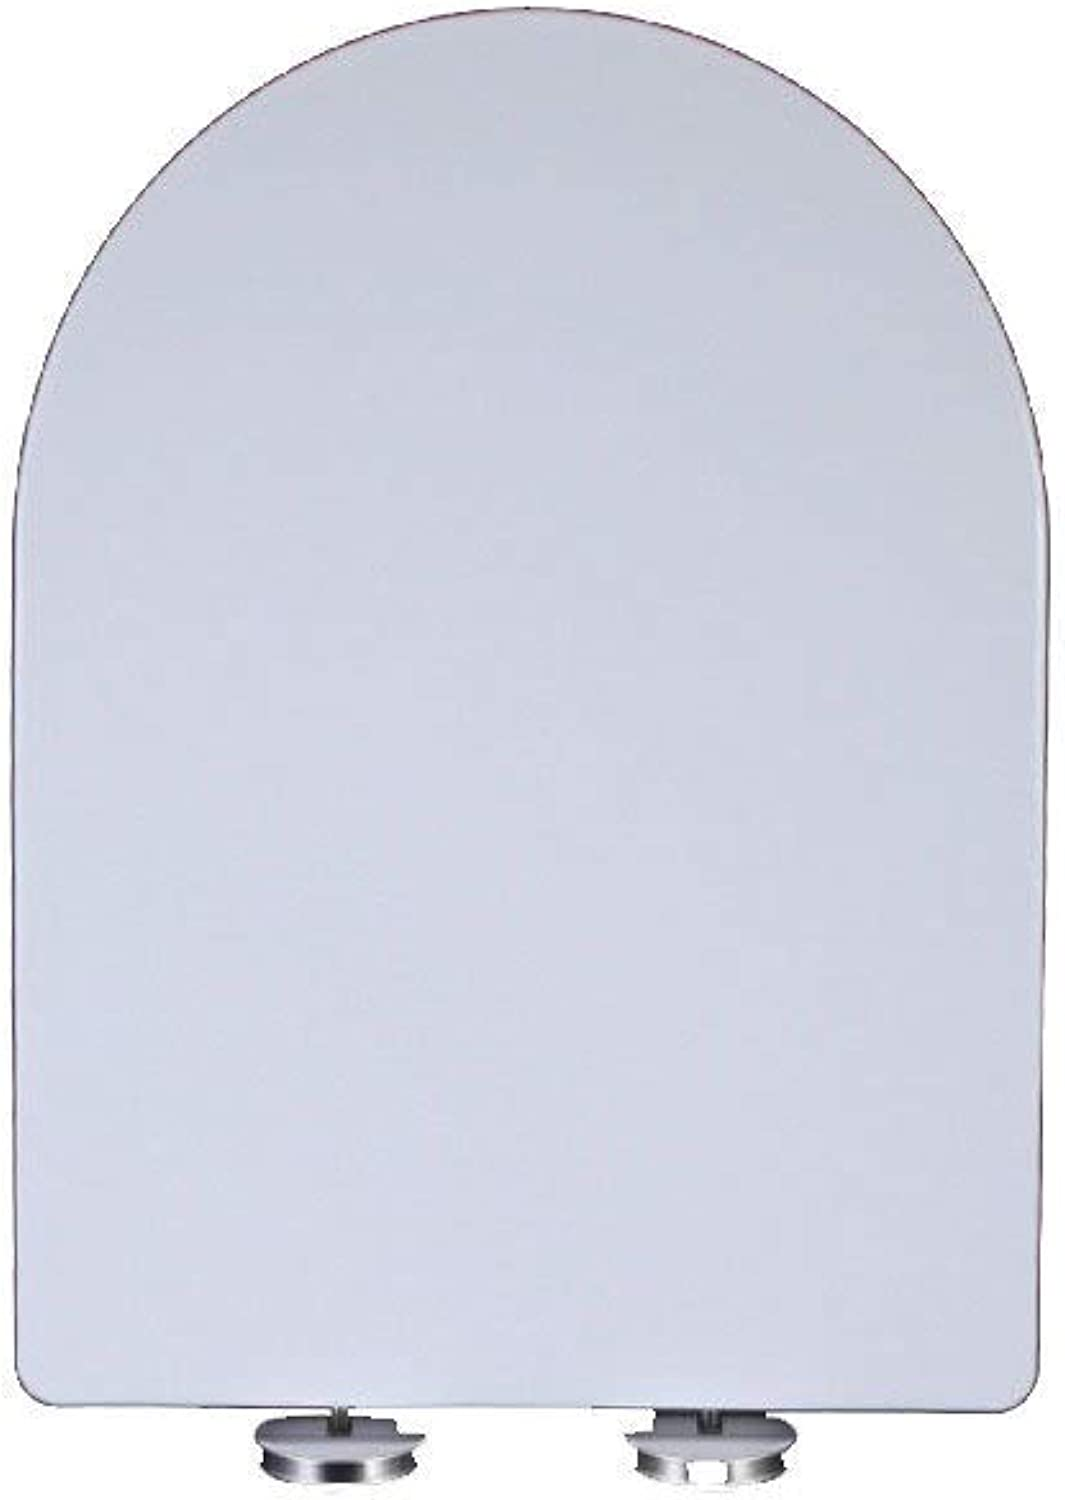 MMKJ White Toilet Seat, Soft Close Adjustable Hinge Quick Release Top Fixed Toilet Seat Cover Bathroom Lid Family Use,White44-48  36cm